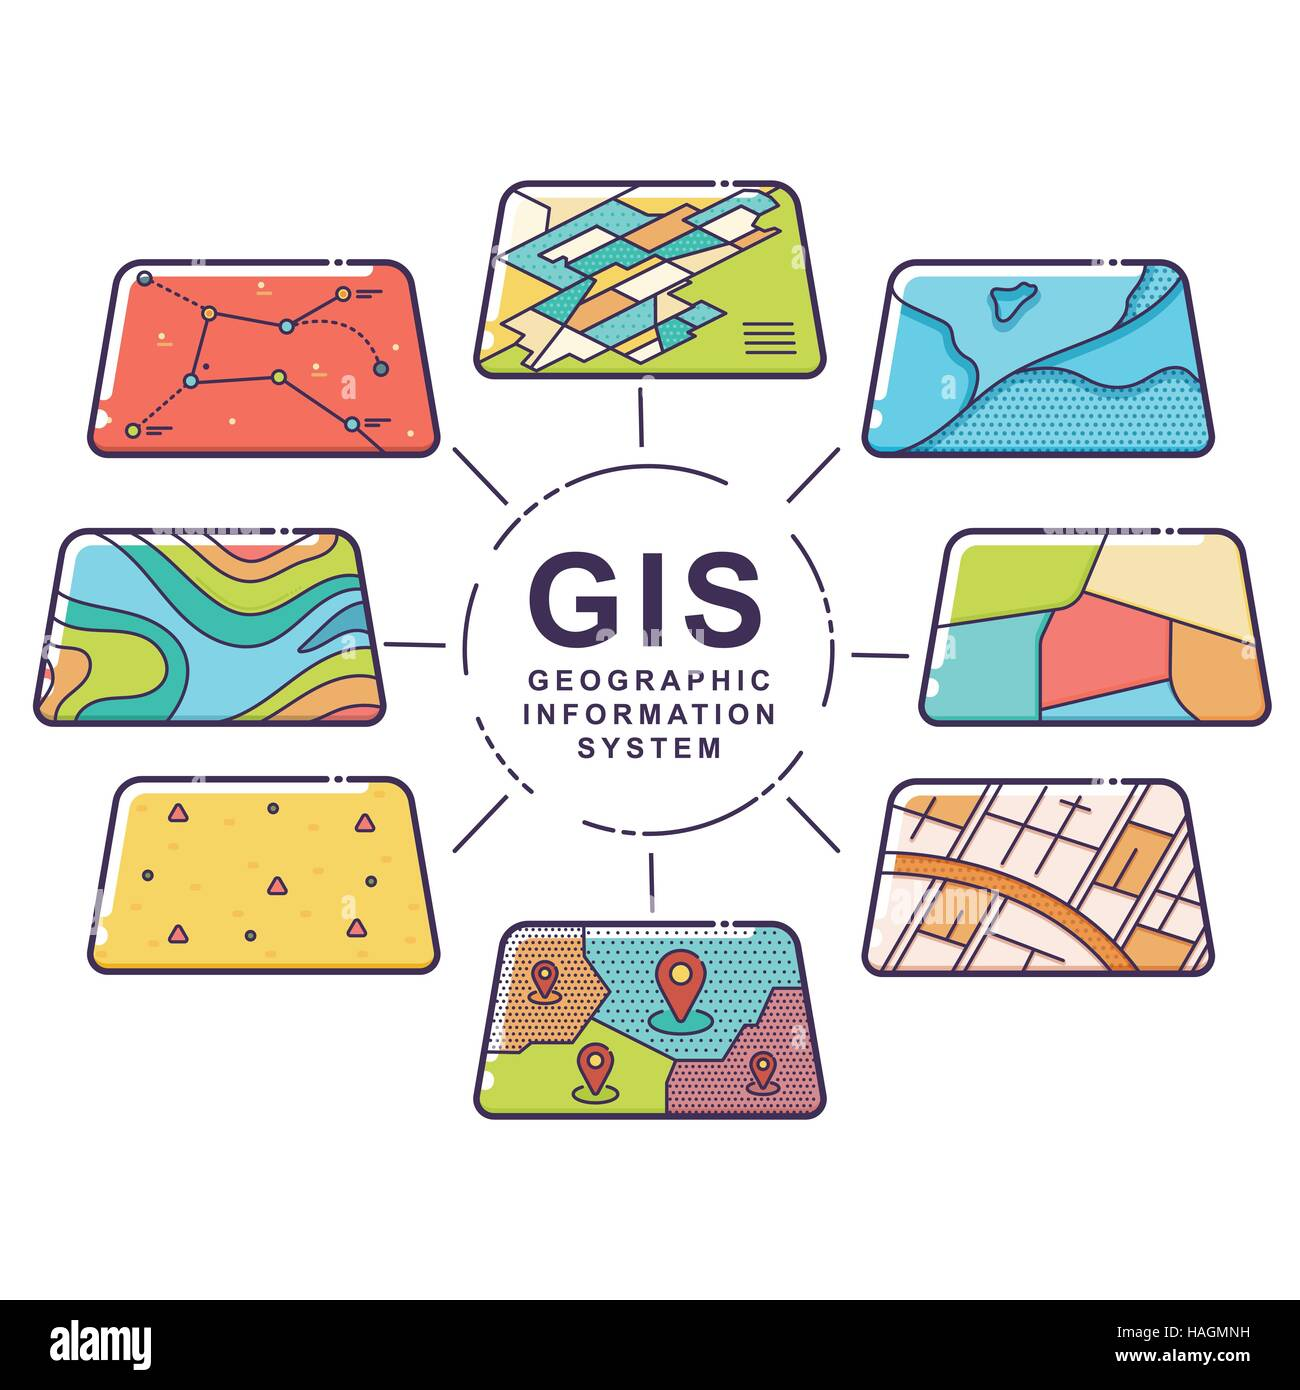 Vector Illustration of GIS Spatial Data Layers Concept for ...